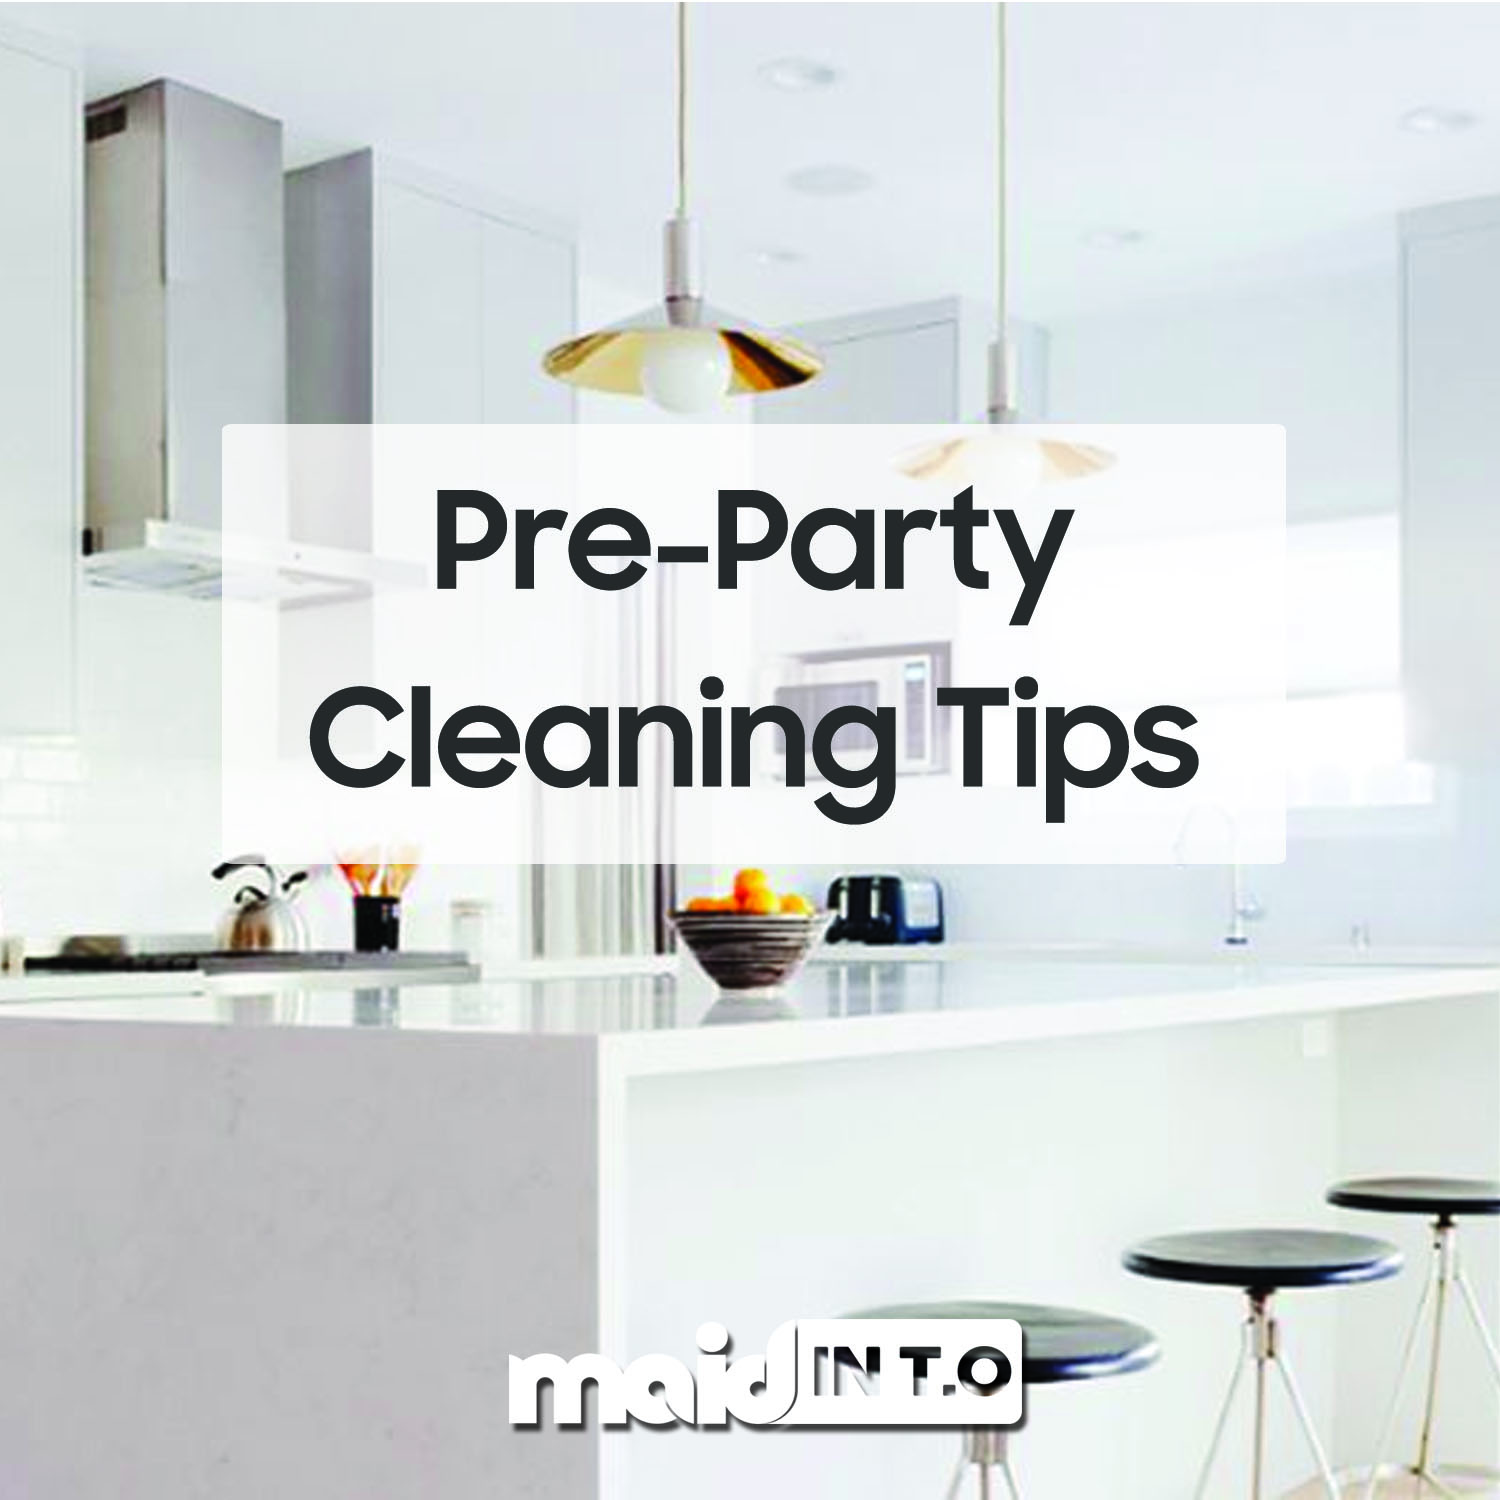 Pre-Party Cleaning Tips